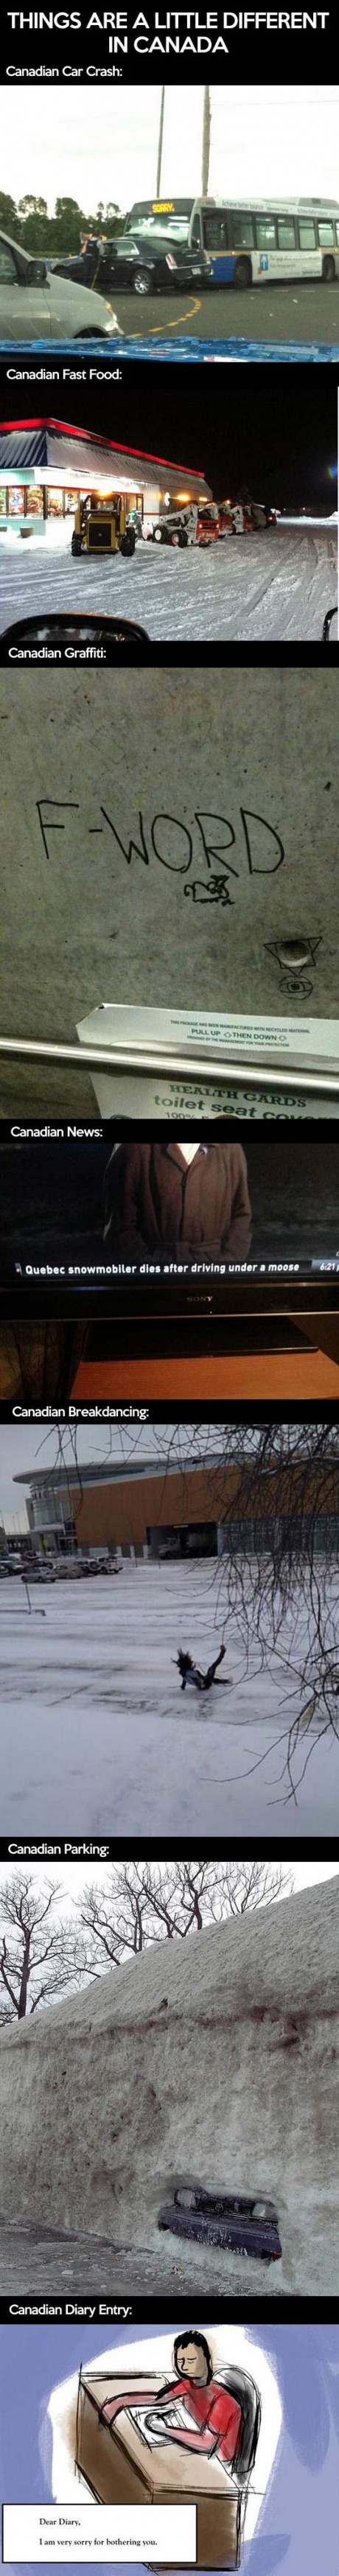 funny-picture-canada-little-different